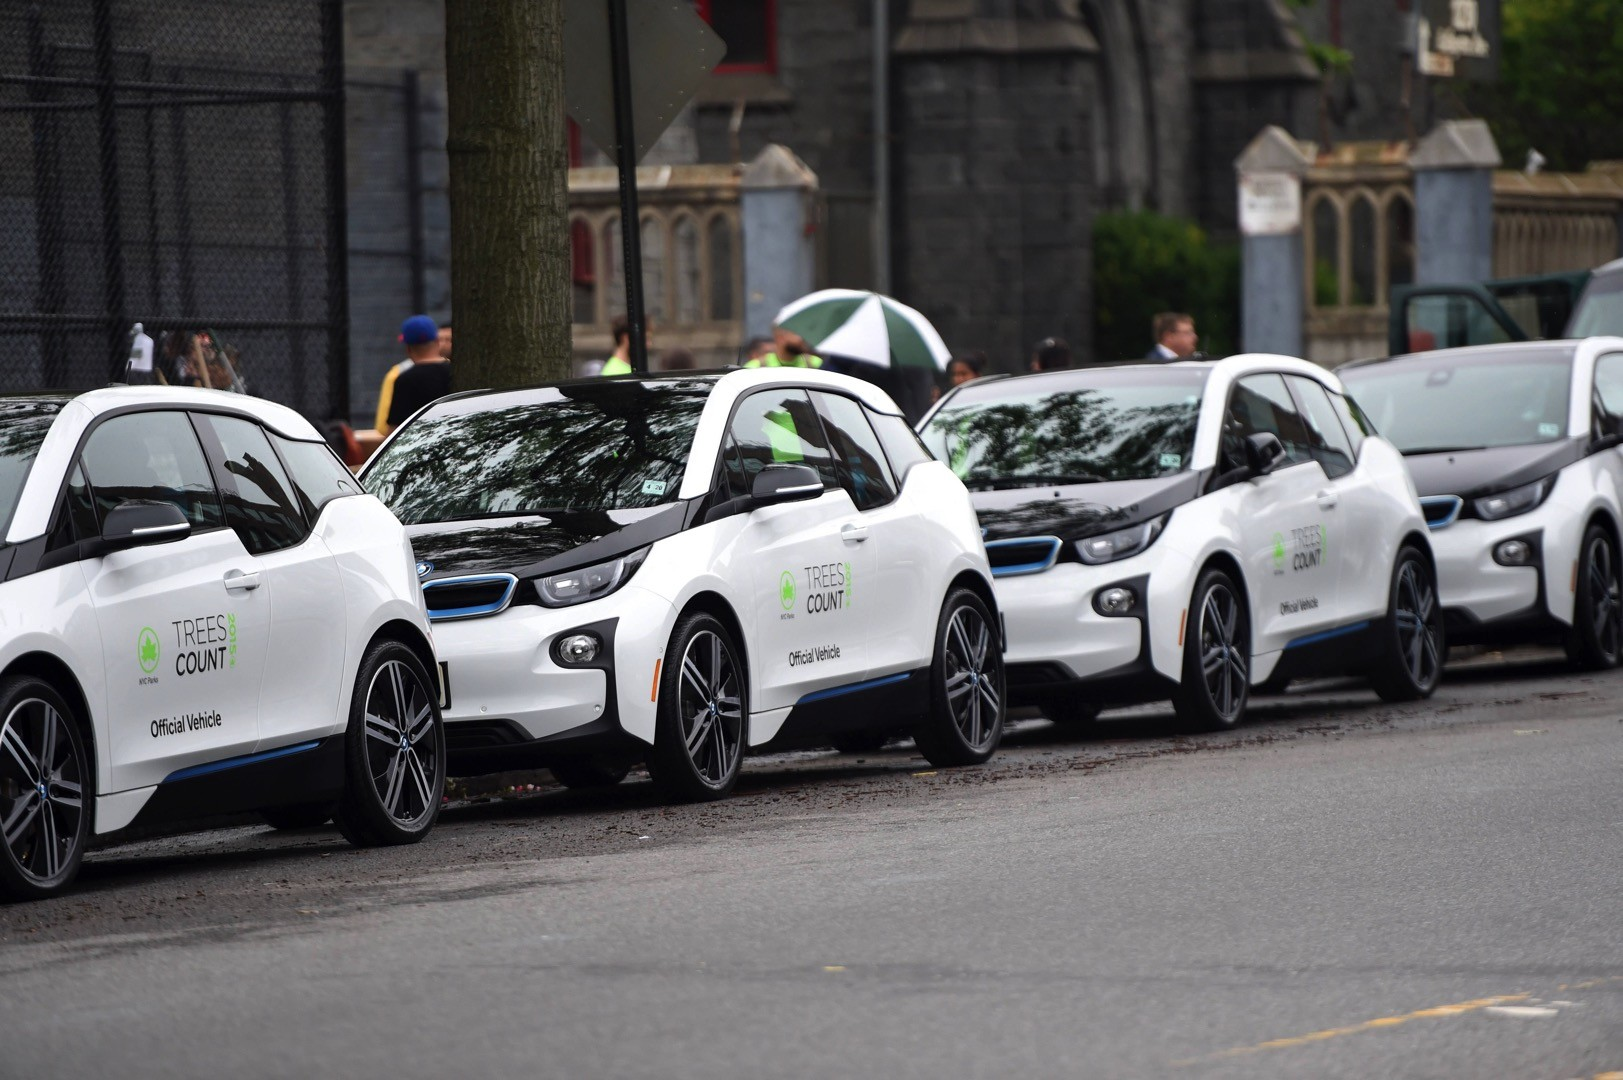 Nyc Parks Receives 20 New Bmw I3 Vehicles For 2015 Treescount Census Autoevolution